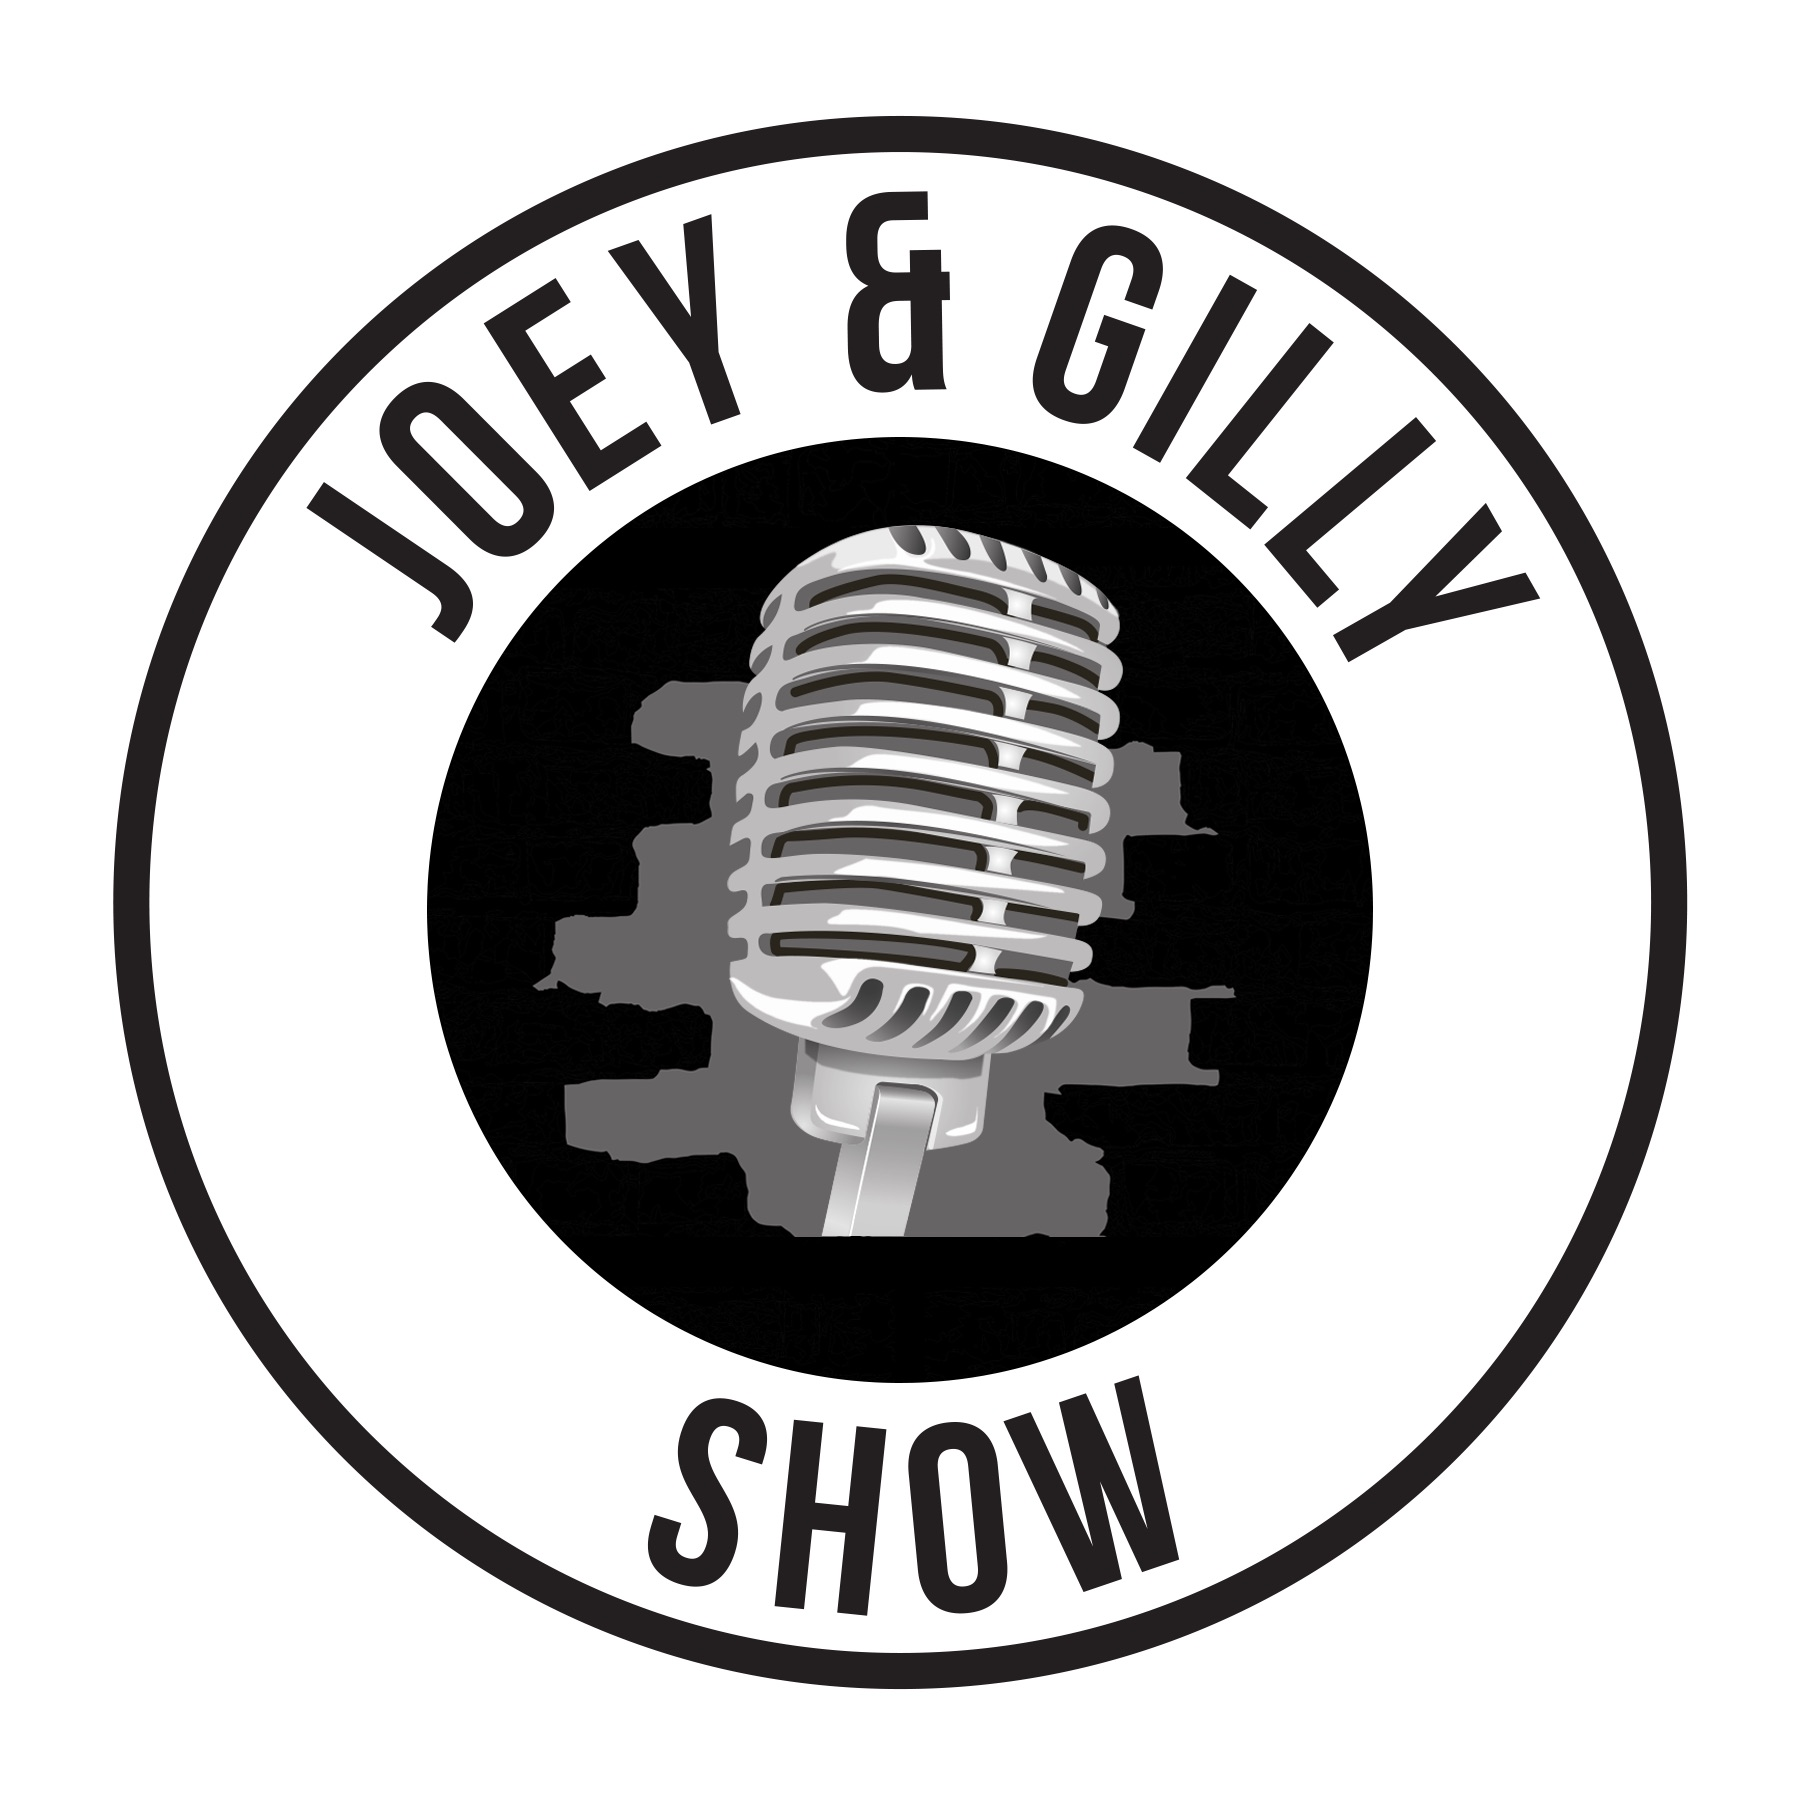 The Joey and Gilly Show